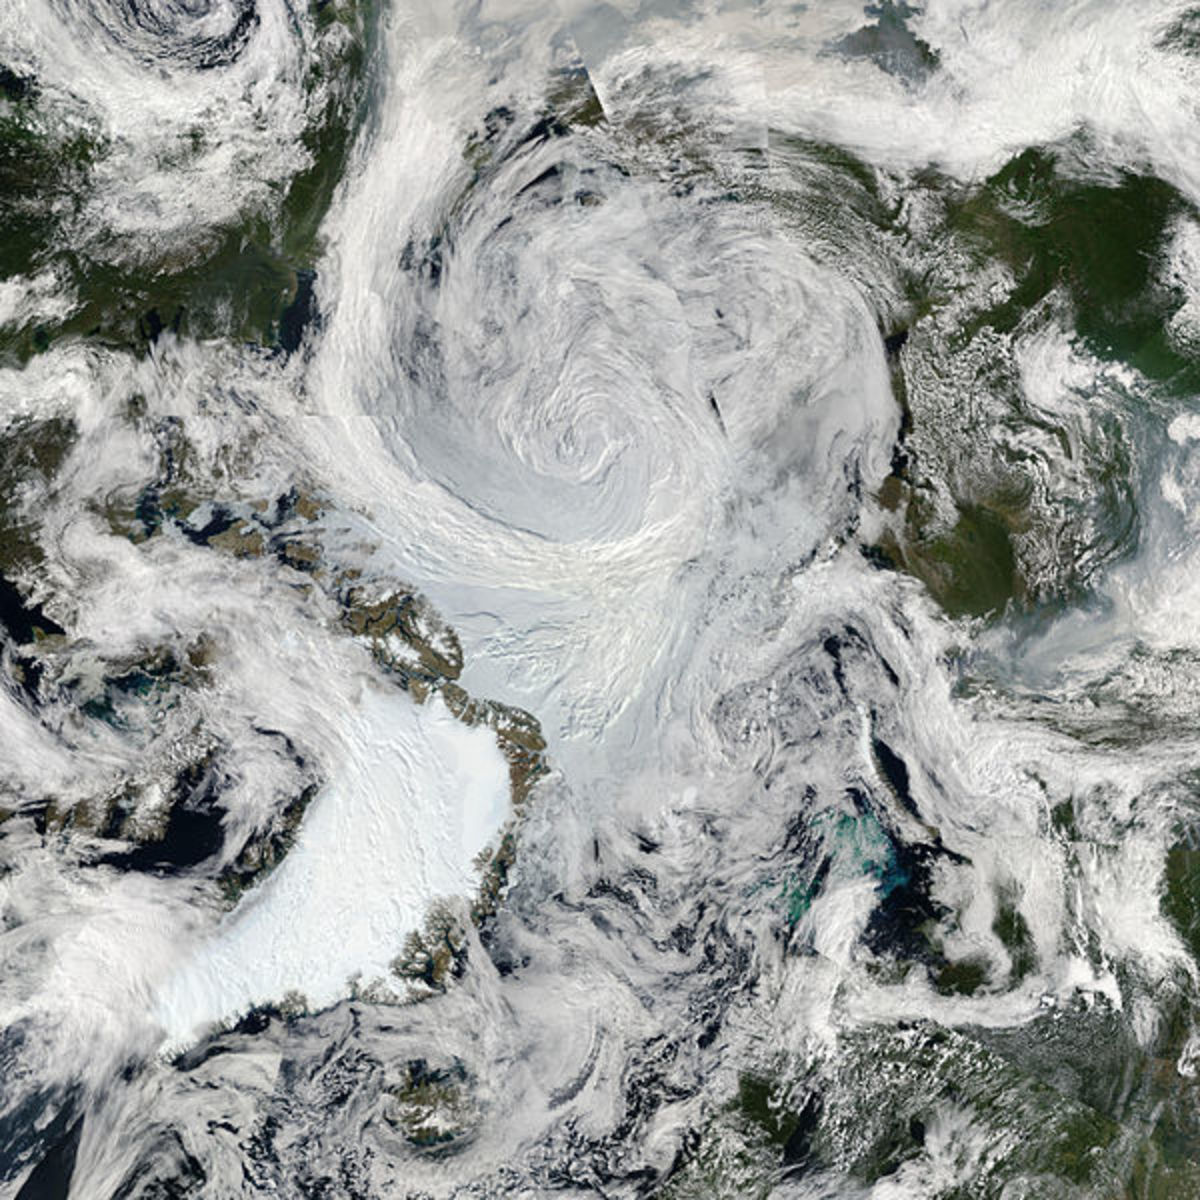 Arctic summer cyclone from orbit, August 6, 2012; Greenland is lower left.  Image courtesy NASA & Wikimedia Commons.